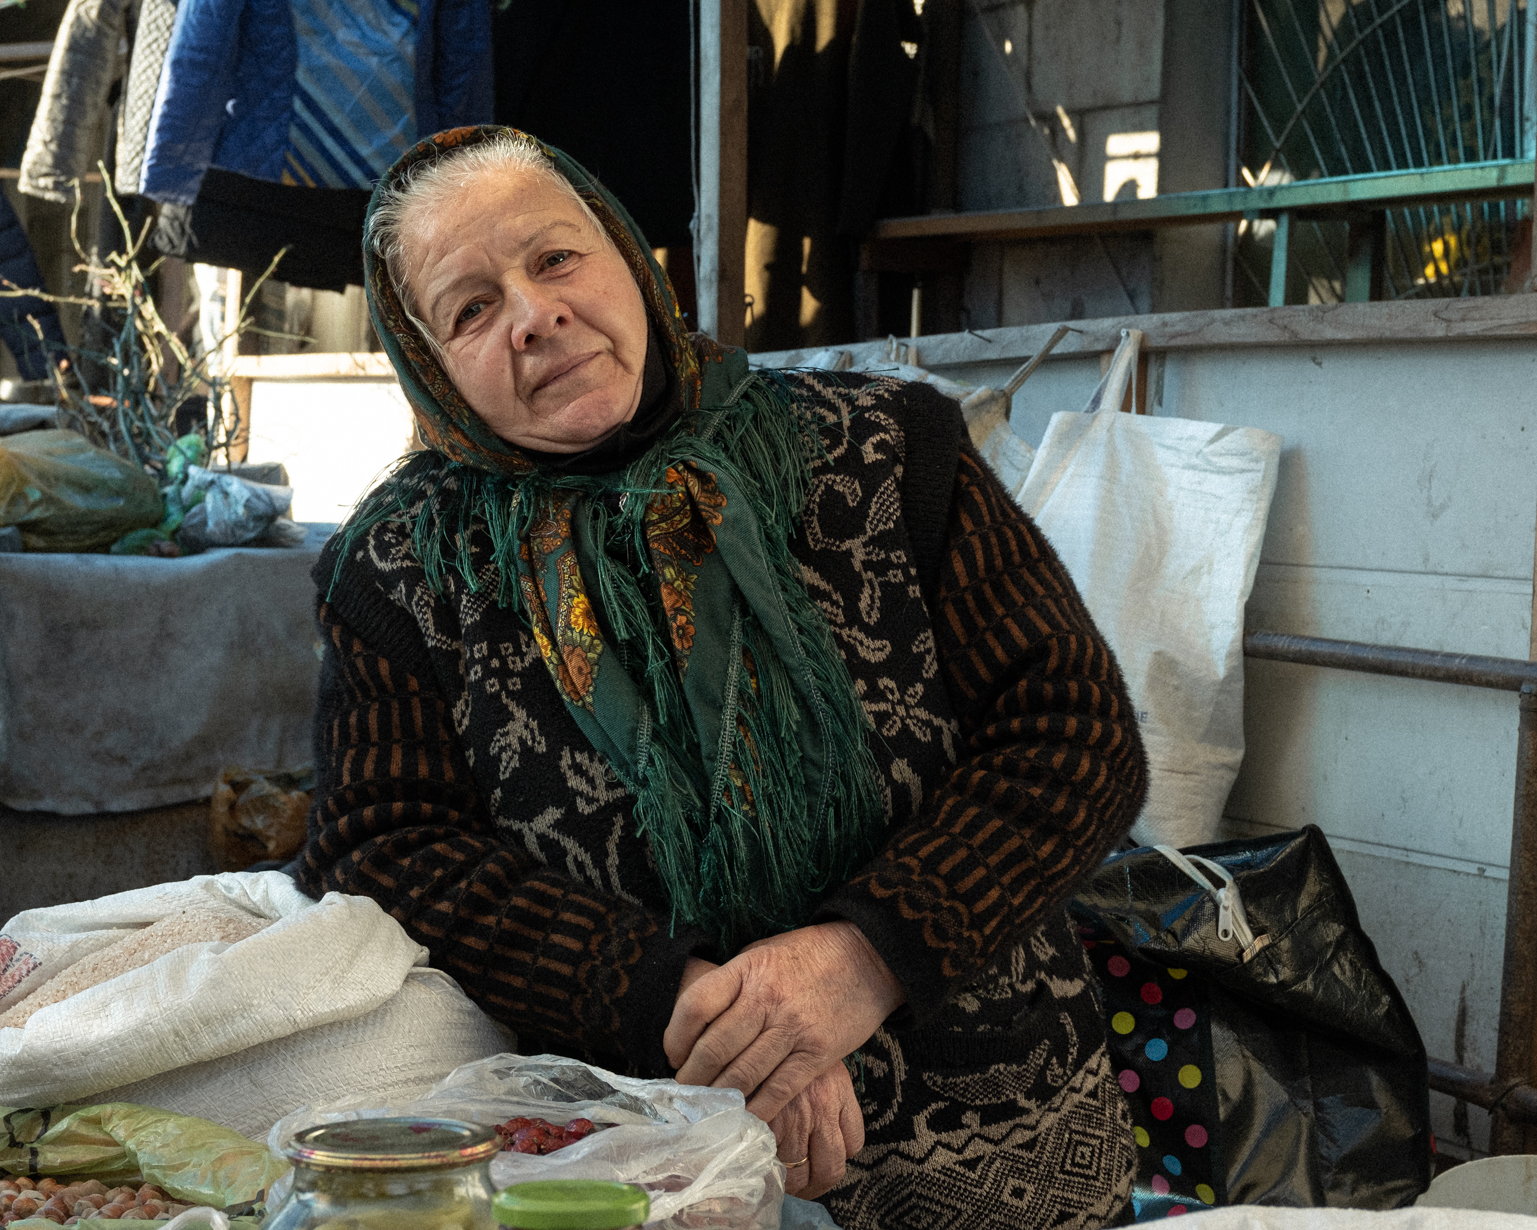 Letafet, 61, sells different goods, from the crops she grows in her garden to rice, at the bazaar. S ...